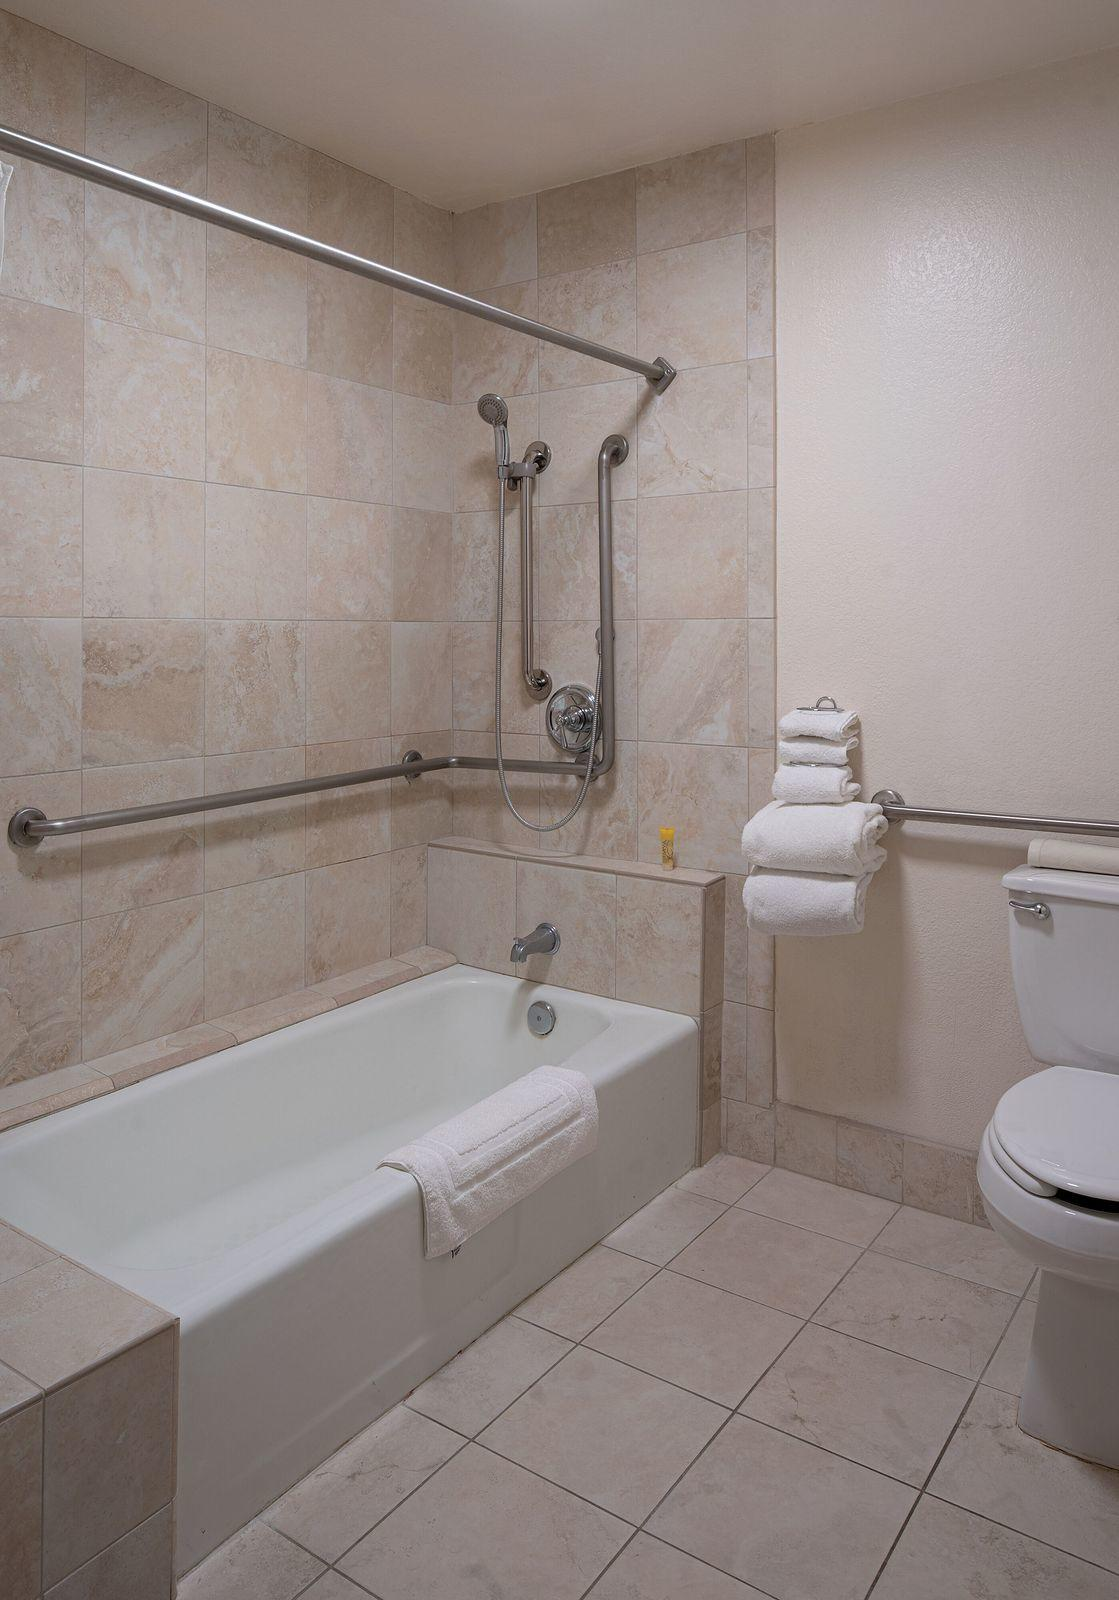 King tub, shower, and toilet in accessible hotel room